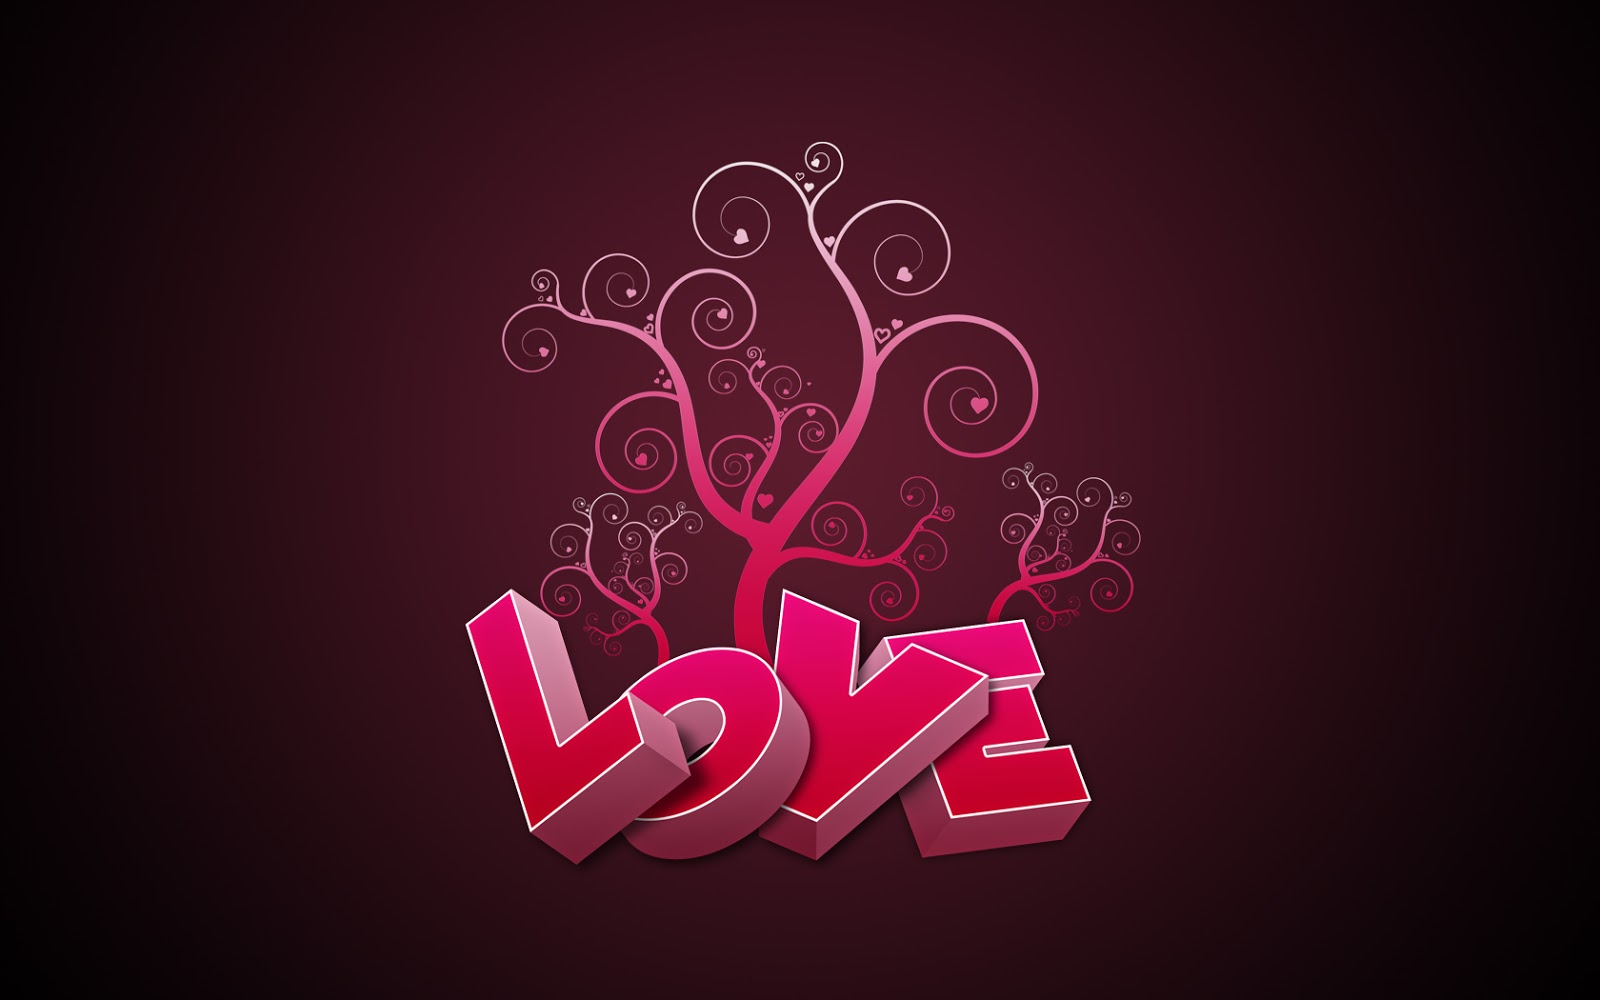 Love Wallpaper Latest : Sms with Wallpapers: 12/28/13